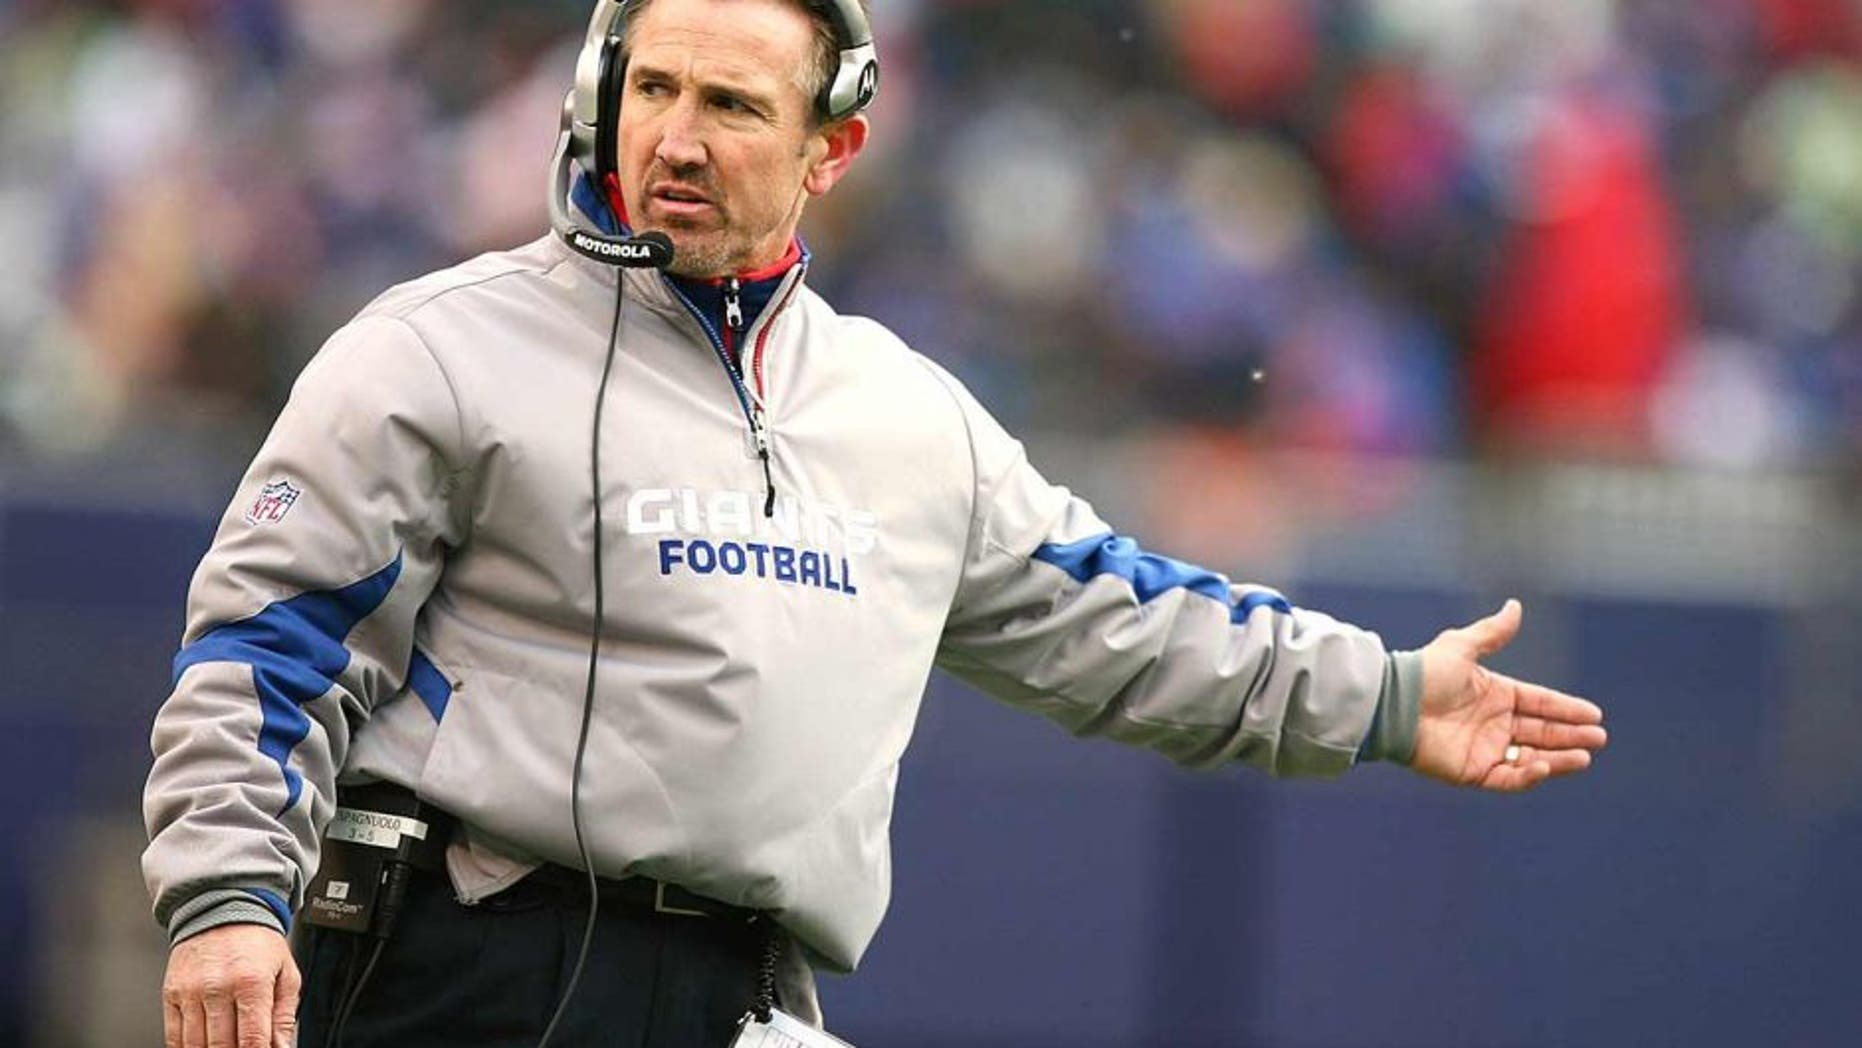 EAST RUTHERFORD, NJ - DECEMBER 07: Steve Spagnulo, Defensive Coordinator of the New York Giants coaches against the Philadelphia Eagles during their game on December 7, 2008 at Giants Stadium in East Rutherford, New Jersey. (Photo by Al Bello/Getty Images)